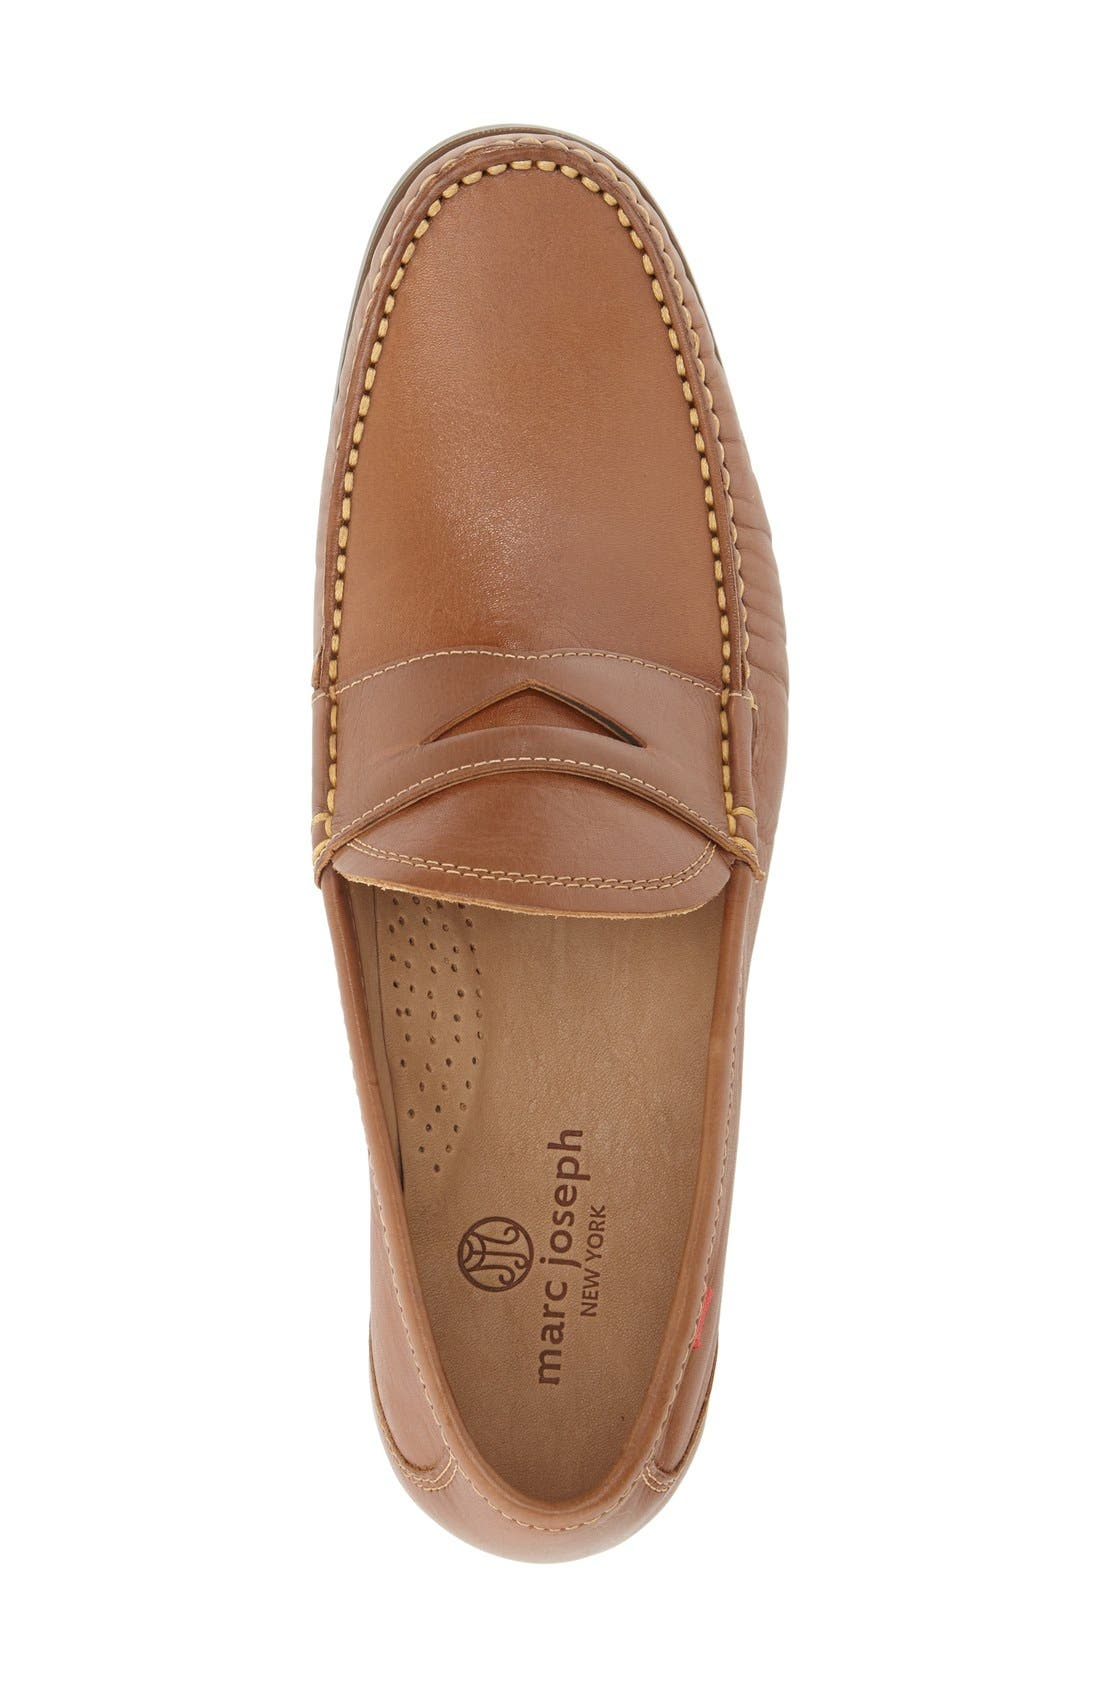 Penny Loafer,                             Alternate thumbnail 3, color,                             Brown Leather